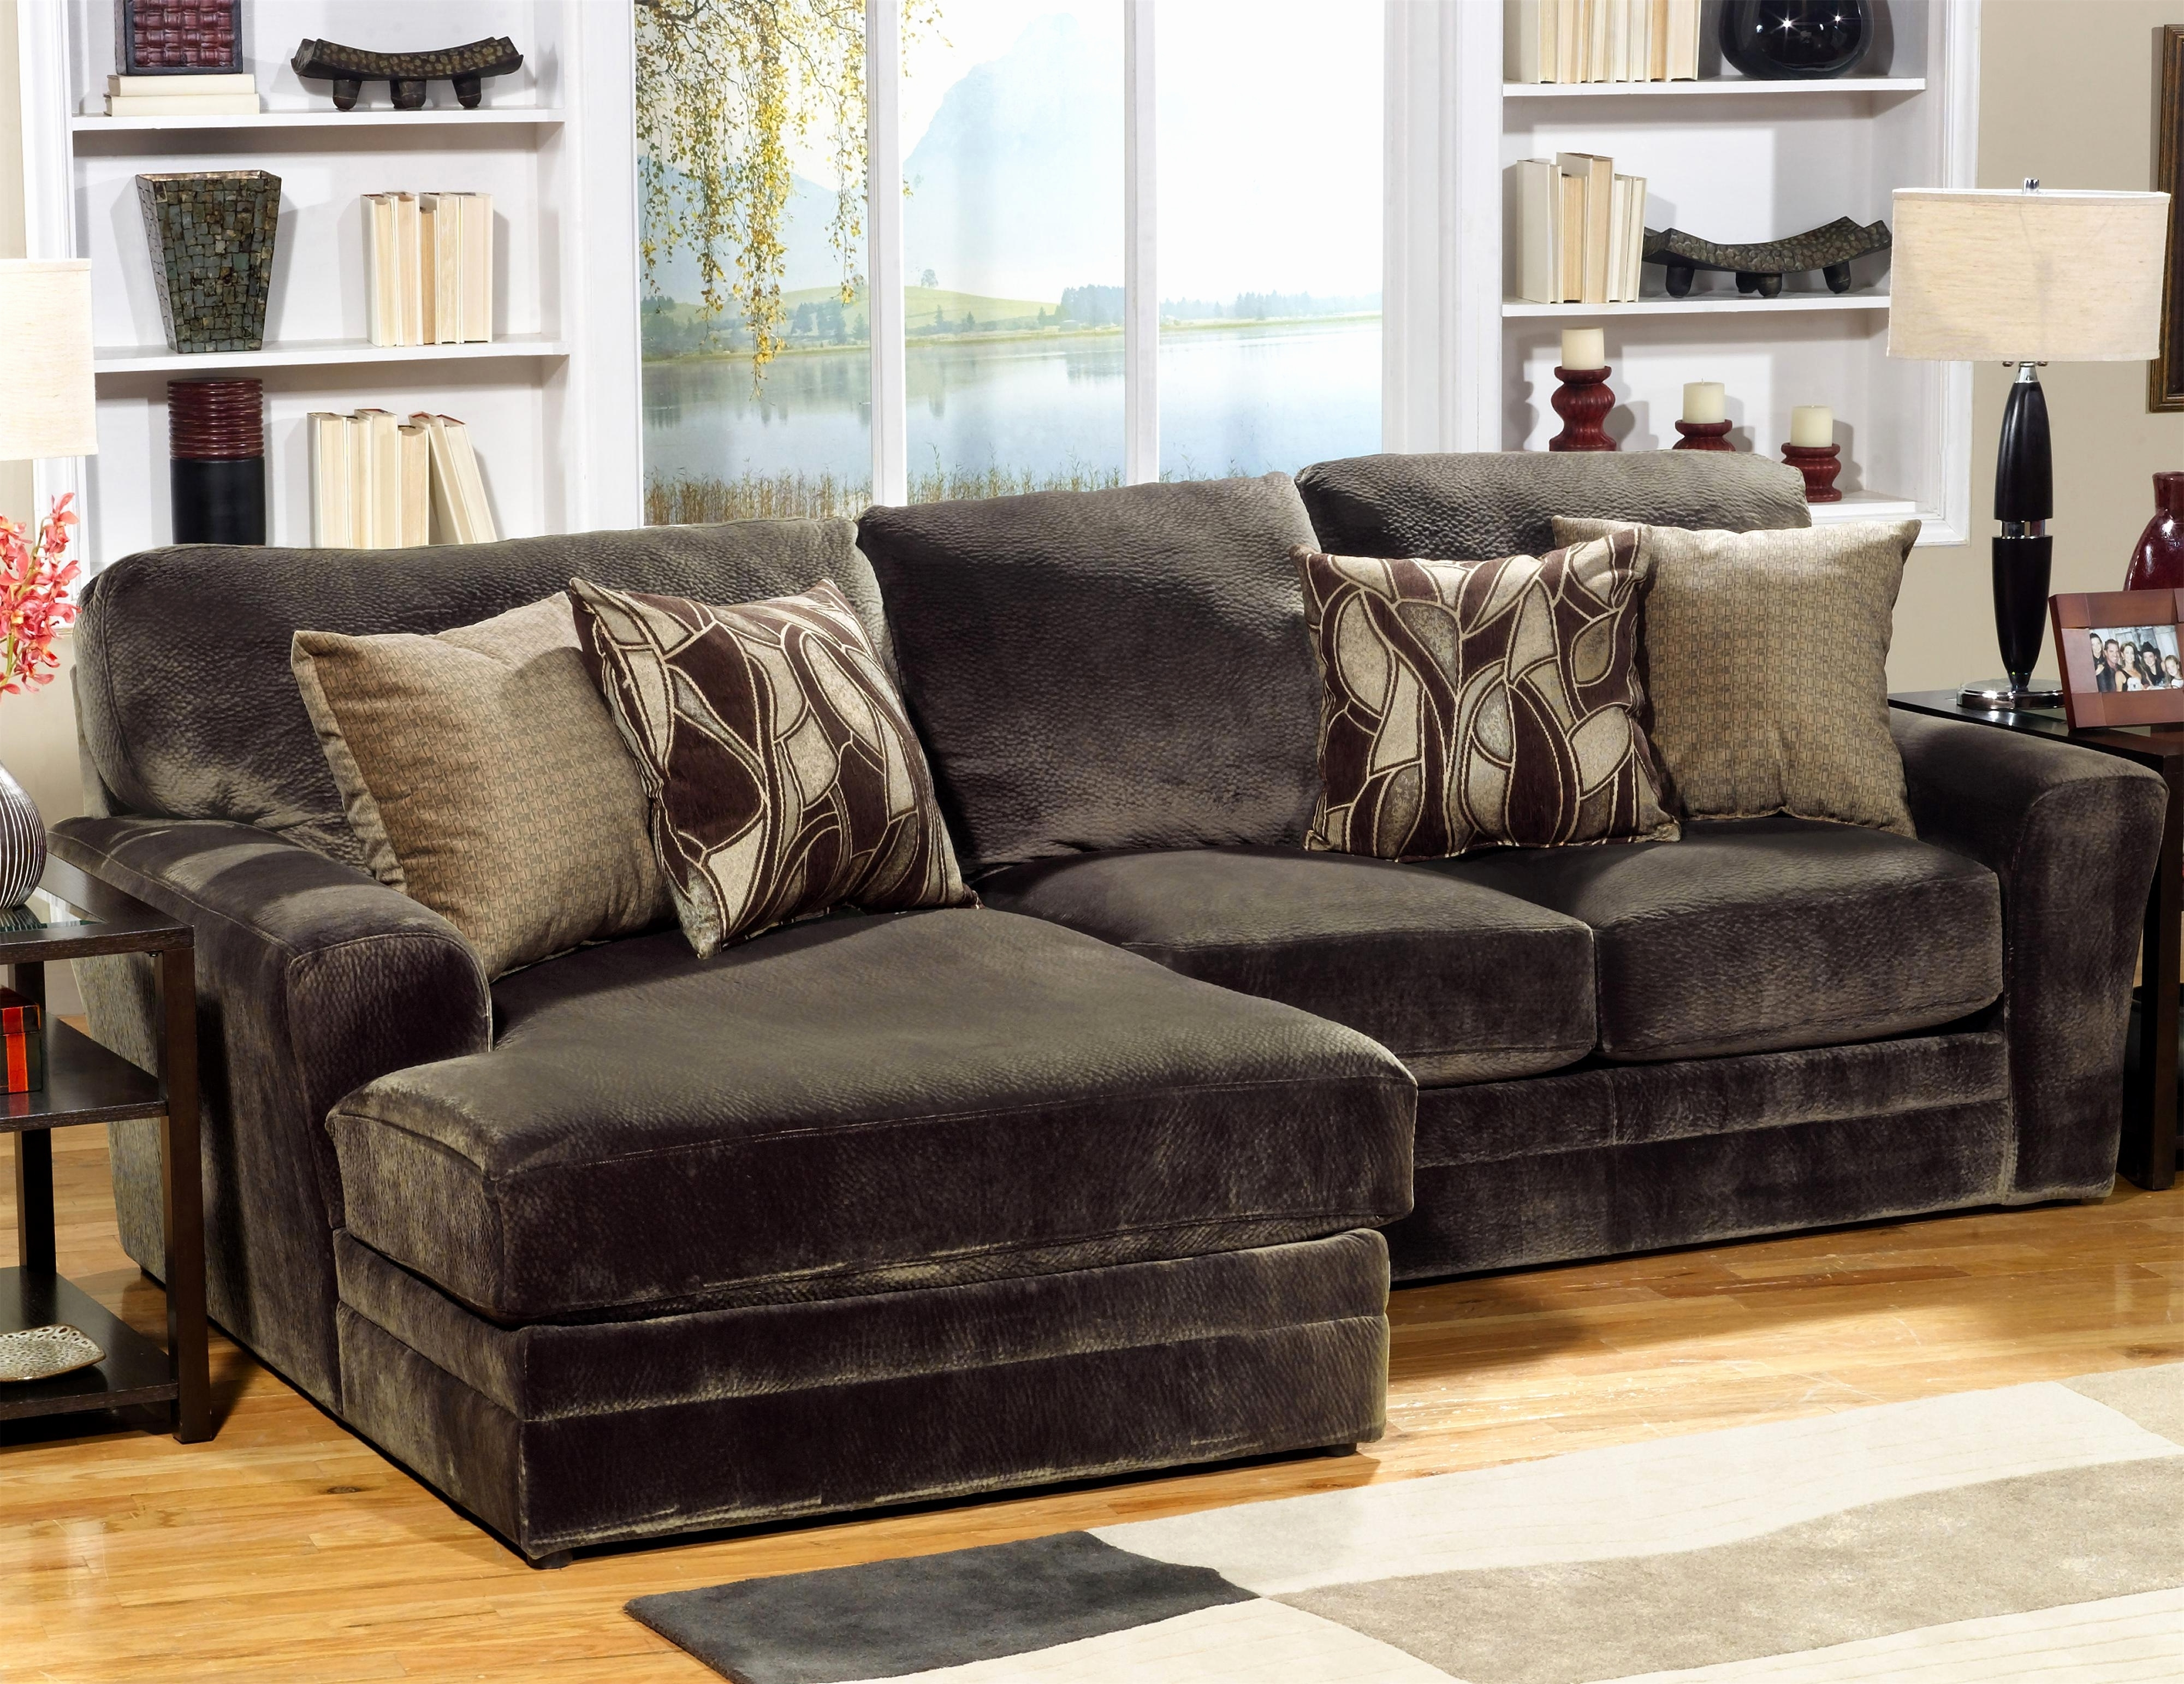 Widely Used Living Room Furniture Lancaster Pa Beautiful Furniture Corinthian For Lancaster Pa Sectional Sofas (View 19 of 20)